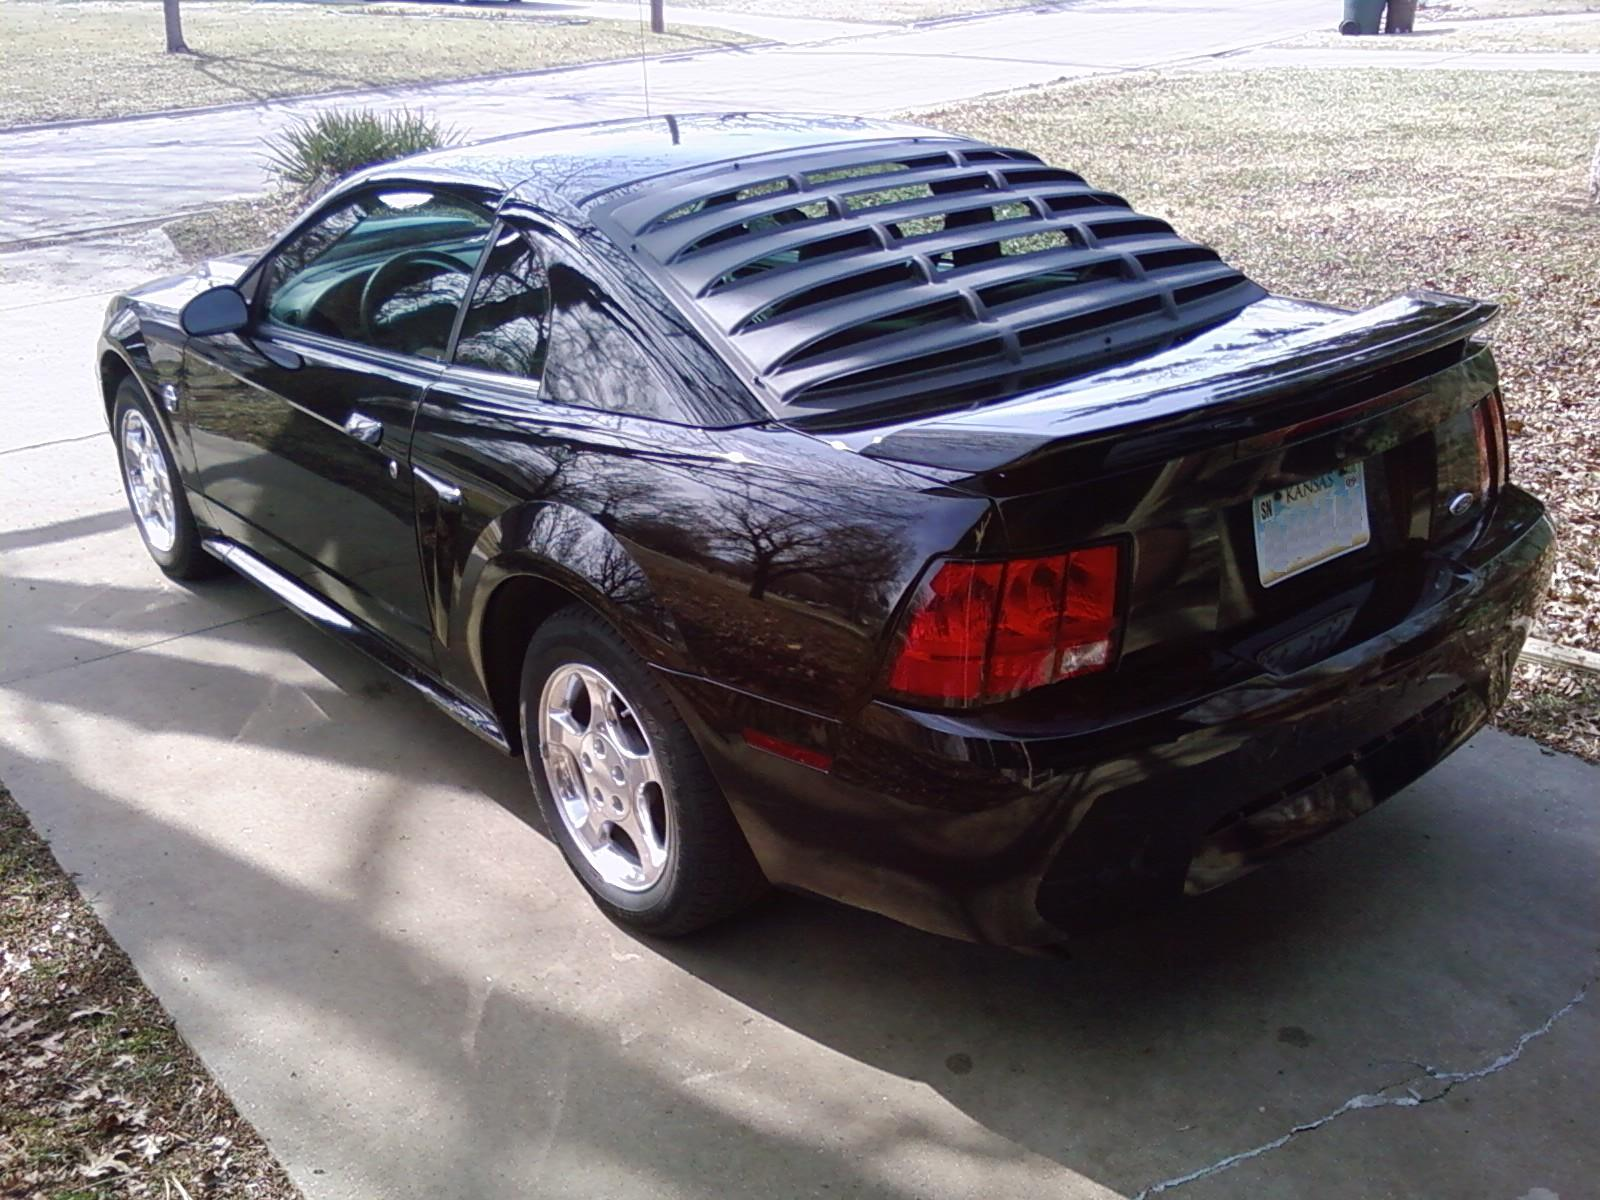 2004 ford mustang pictures cargurus for 2000 mustang rear window louvers